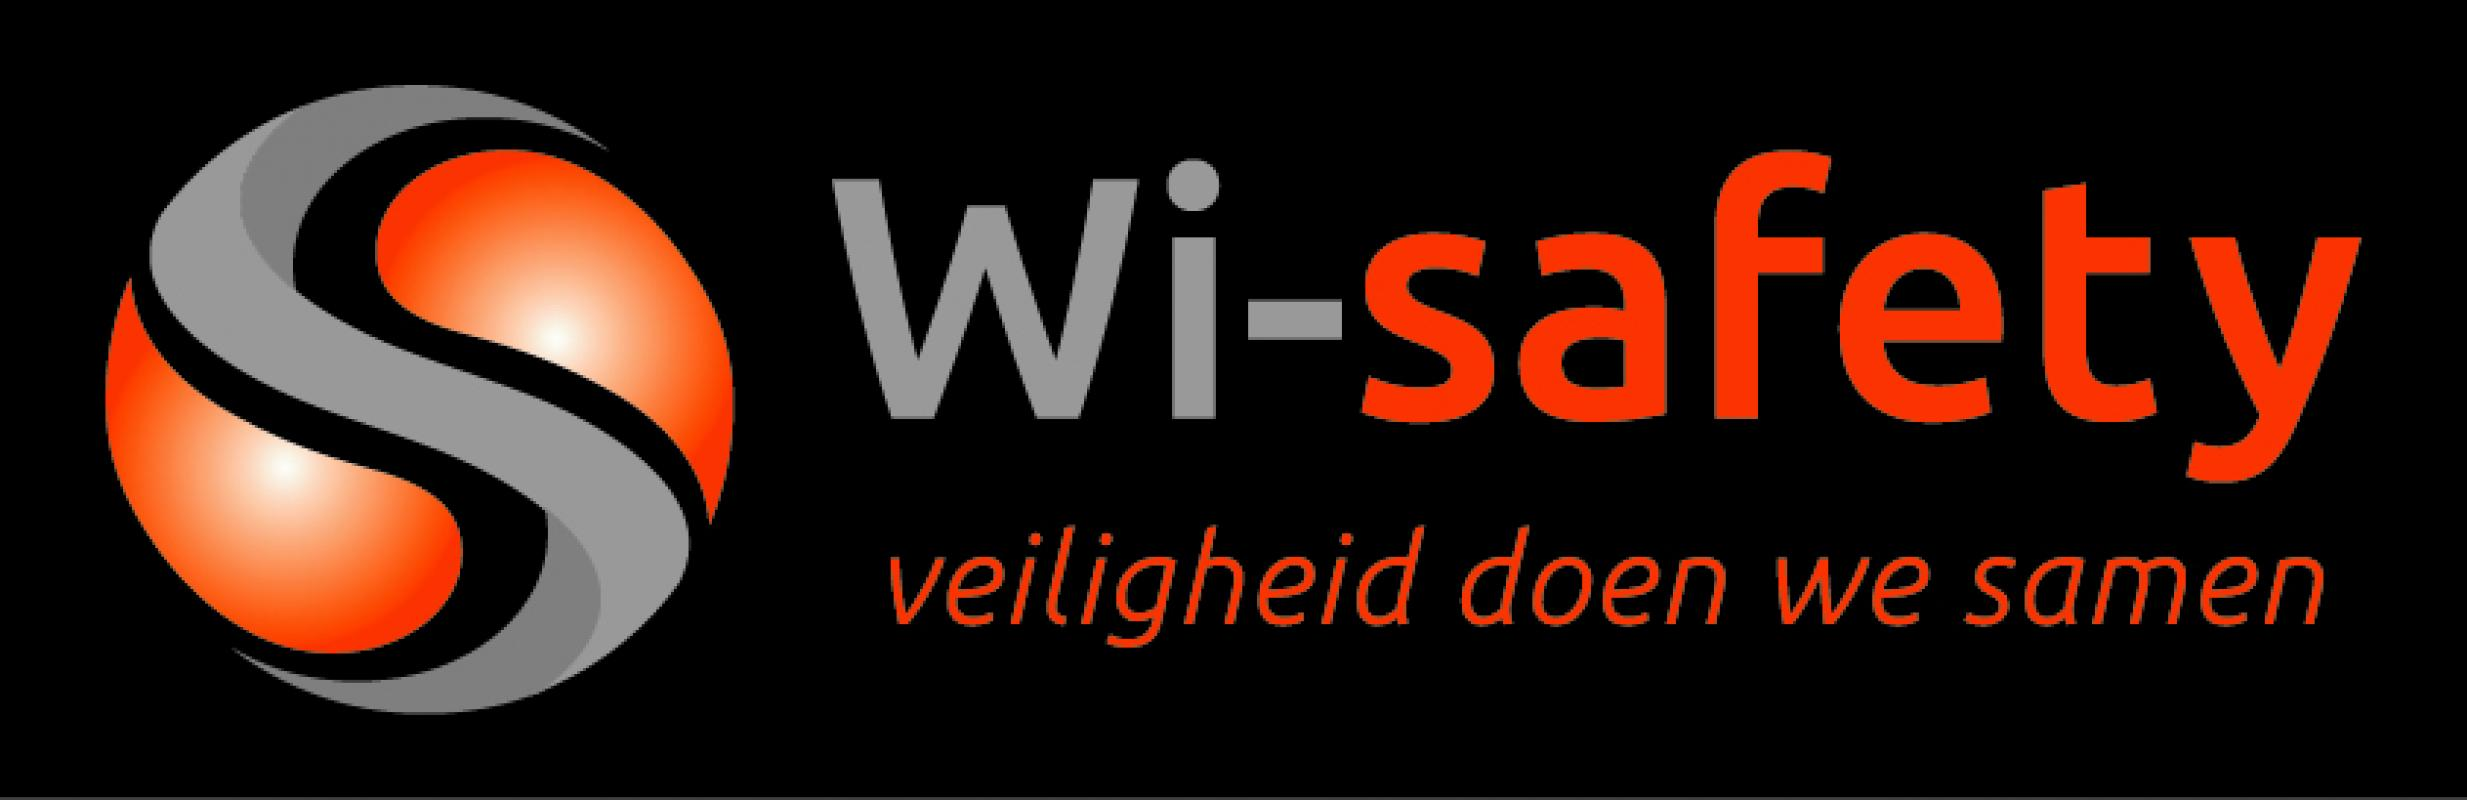 Wi-safety